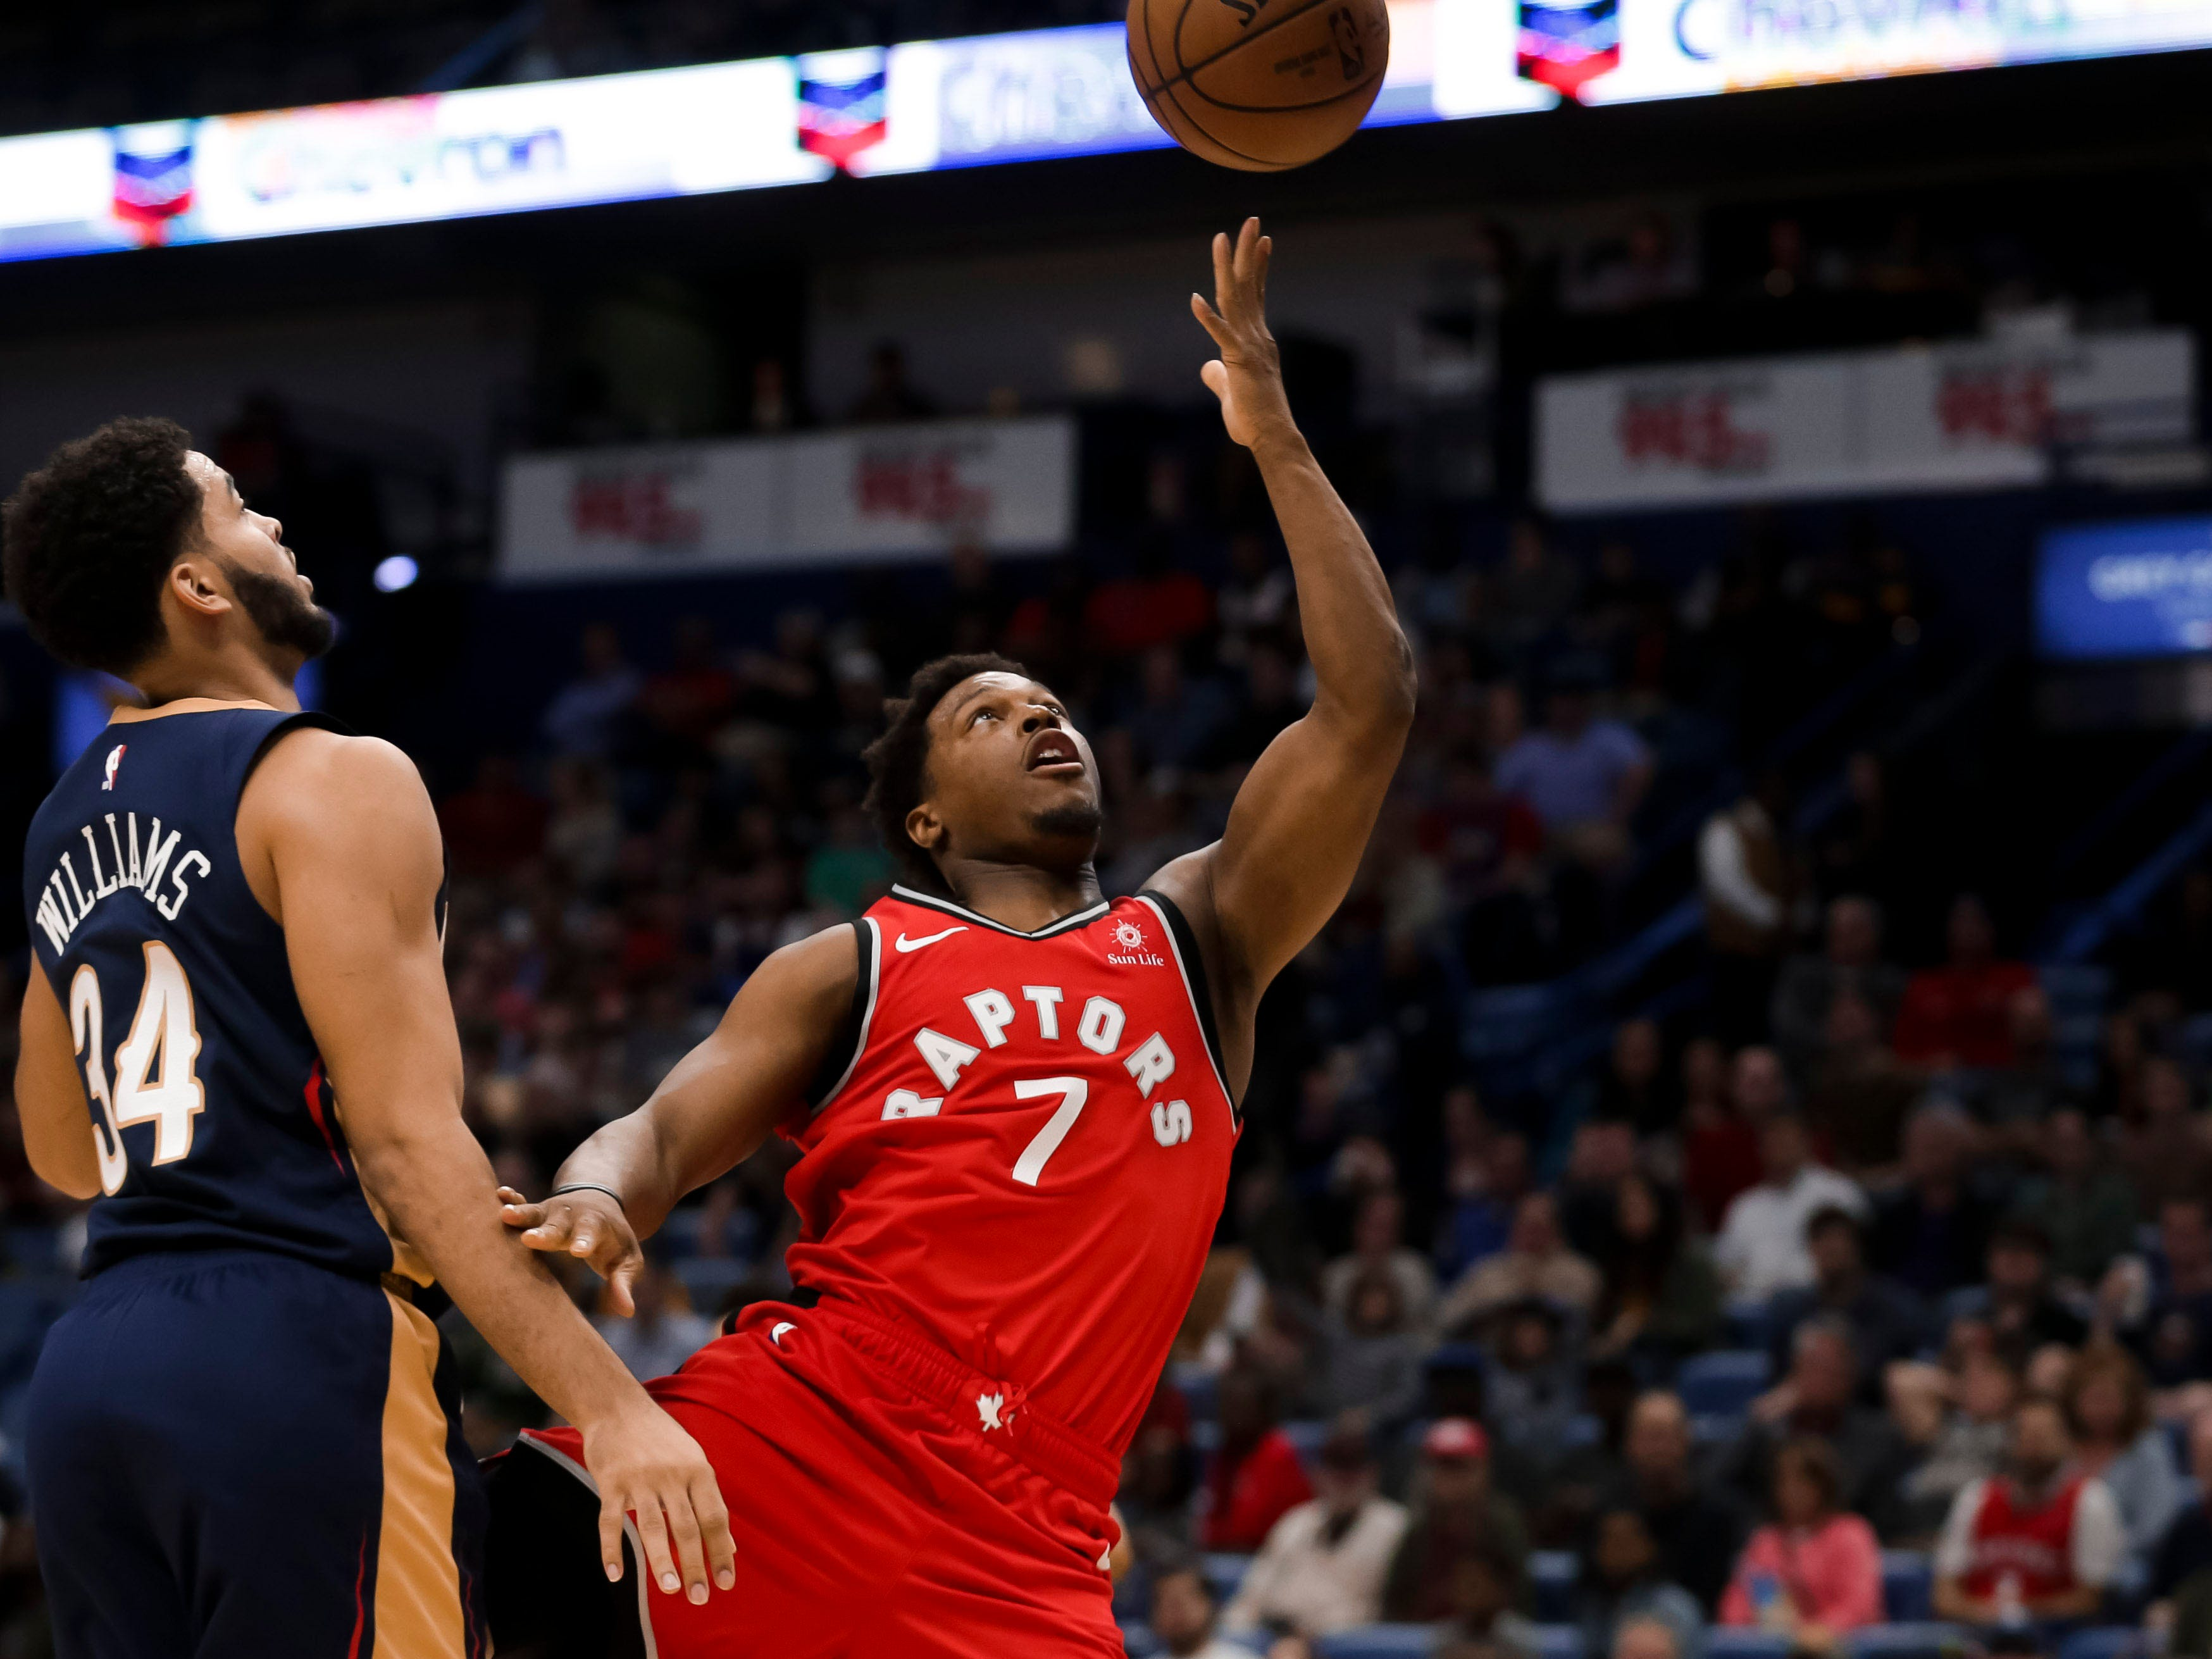 94. Kyle Lowry, Raptors (March 8): 13 points, 12 assist, 11 rebounds in 127-104 win over Pelicans (second of season).